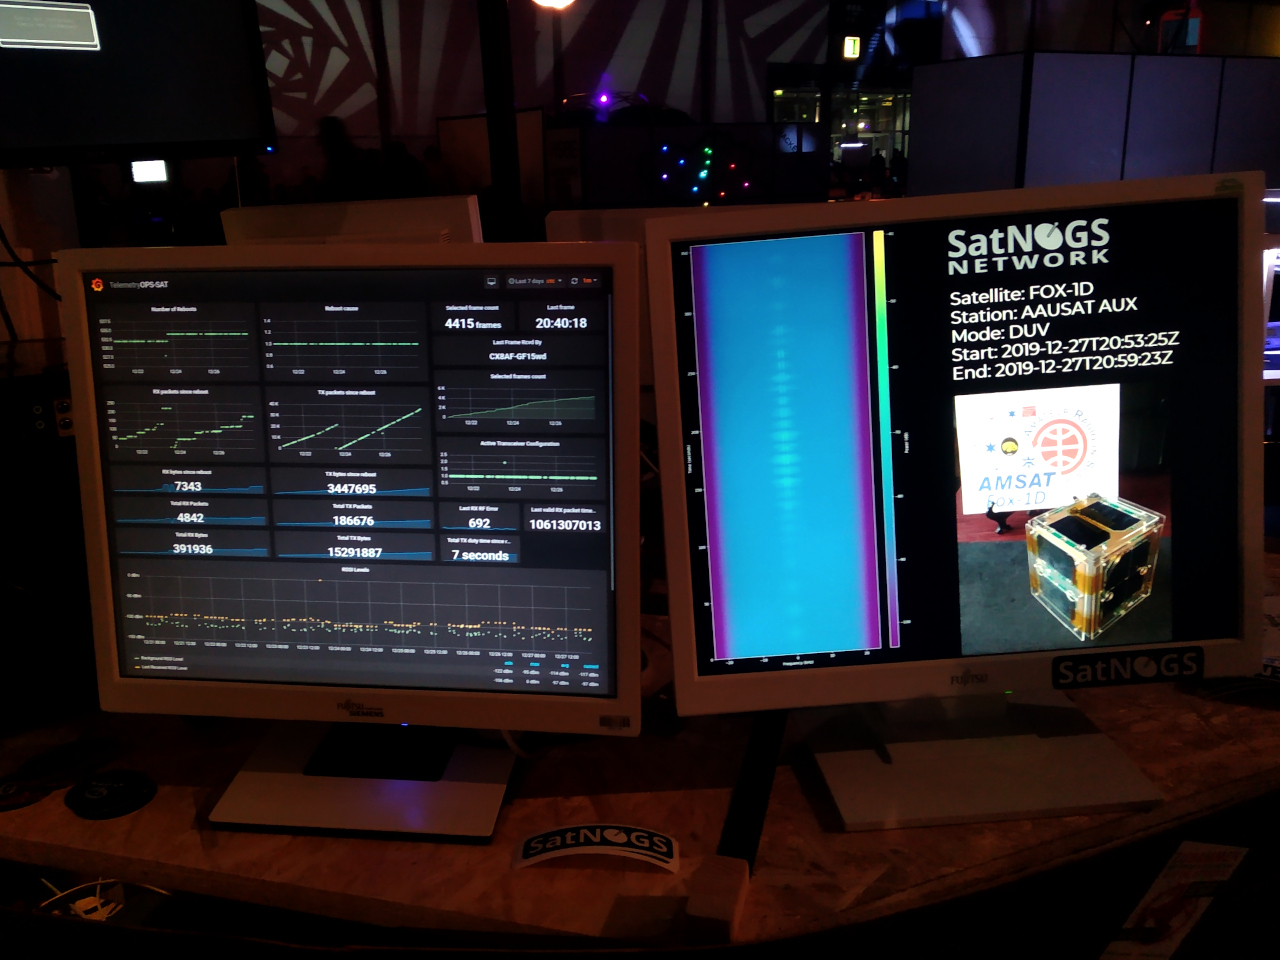 Satellite dashboards and satnogs demo display